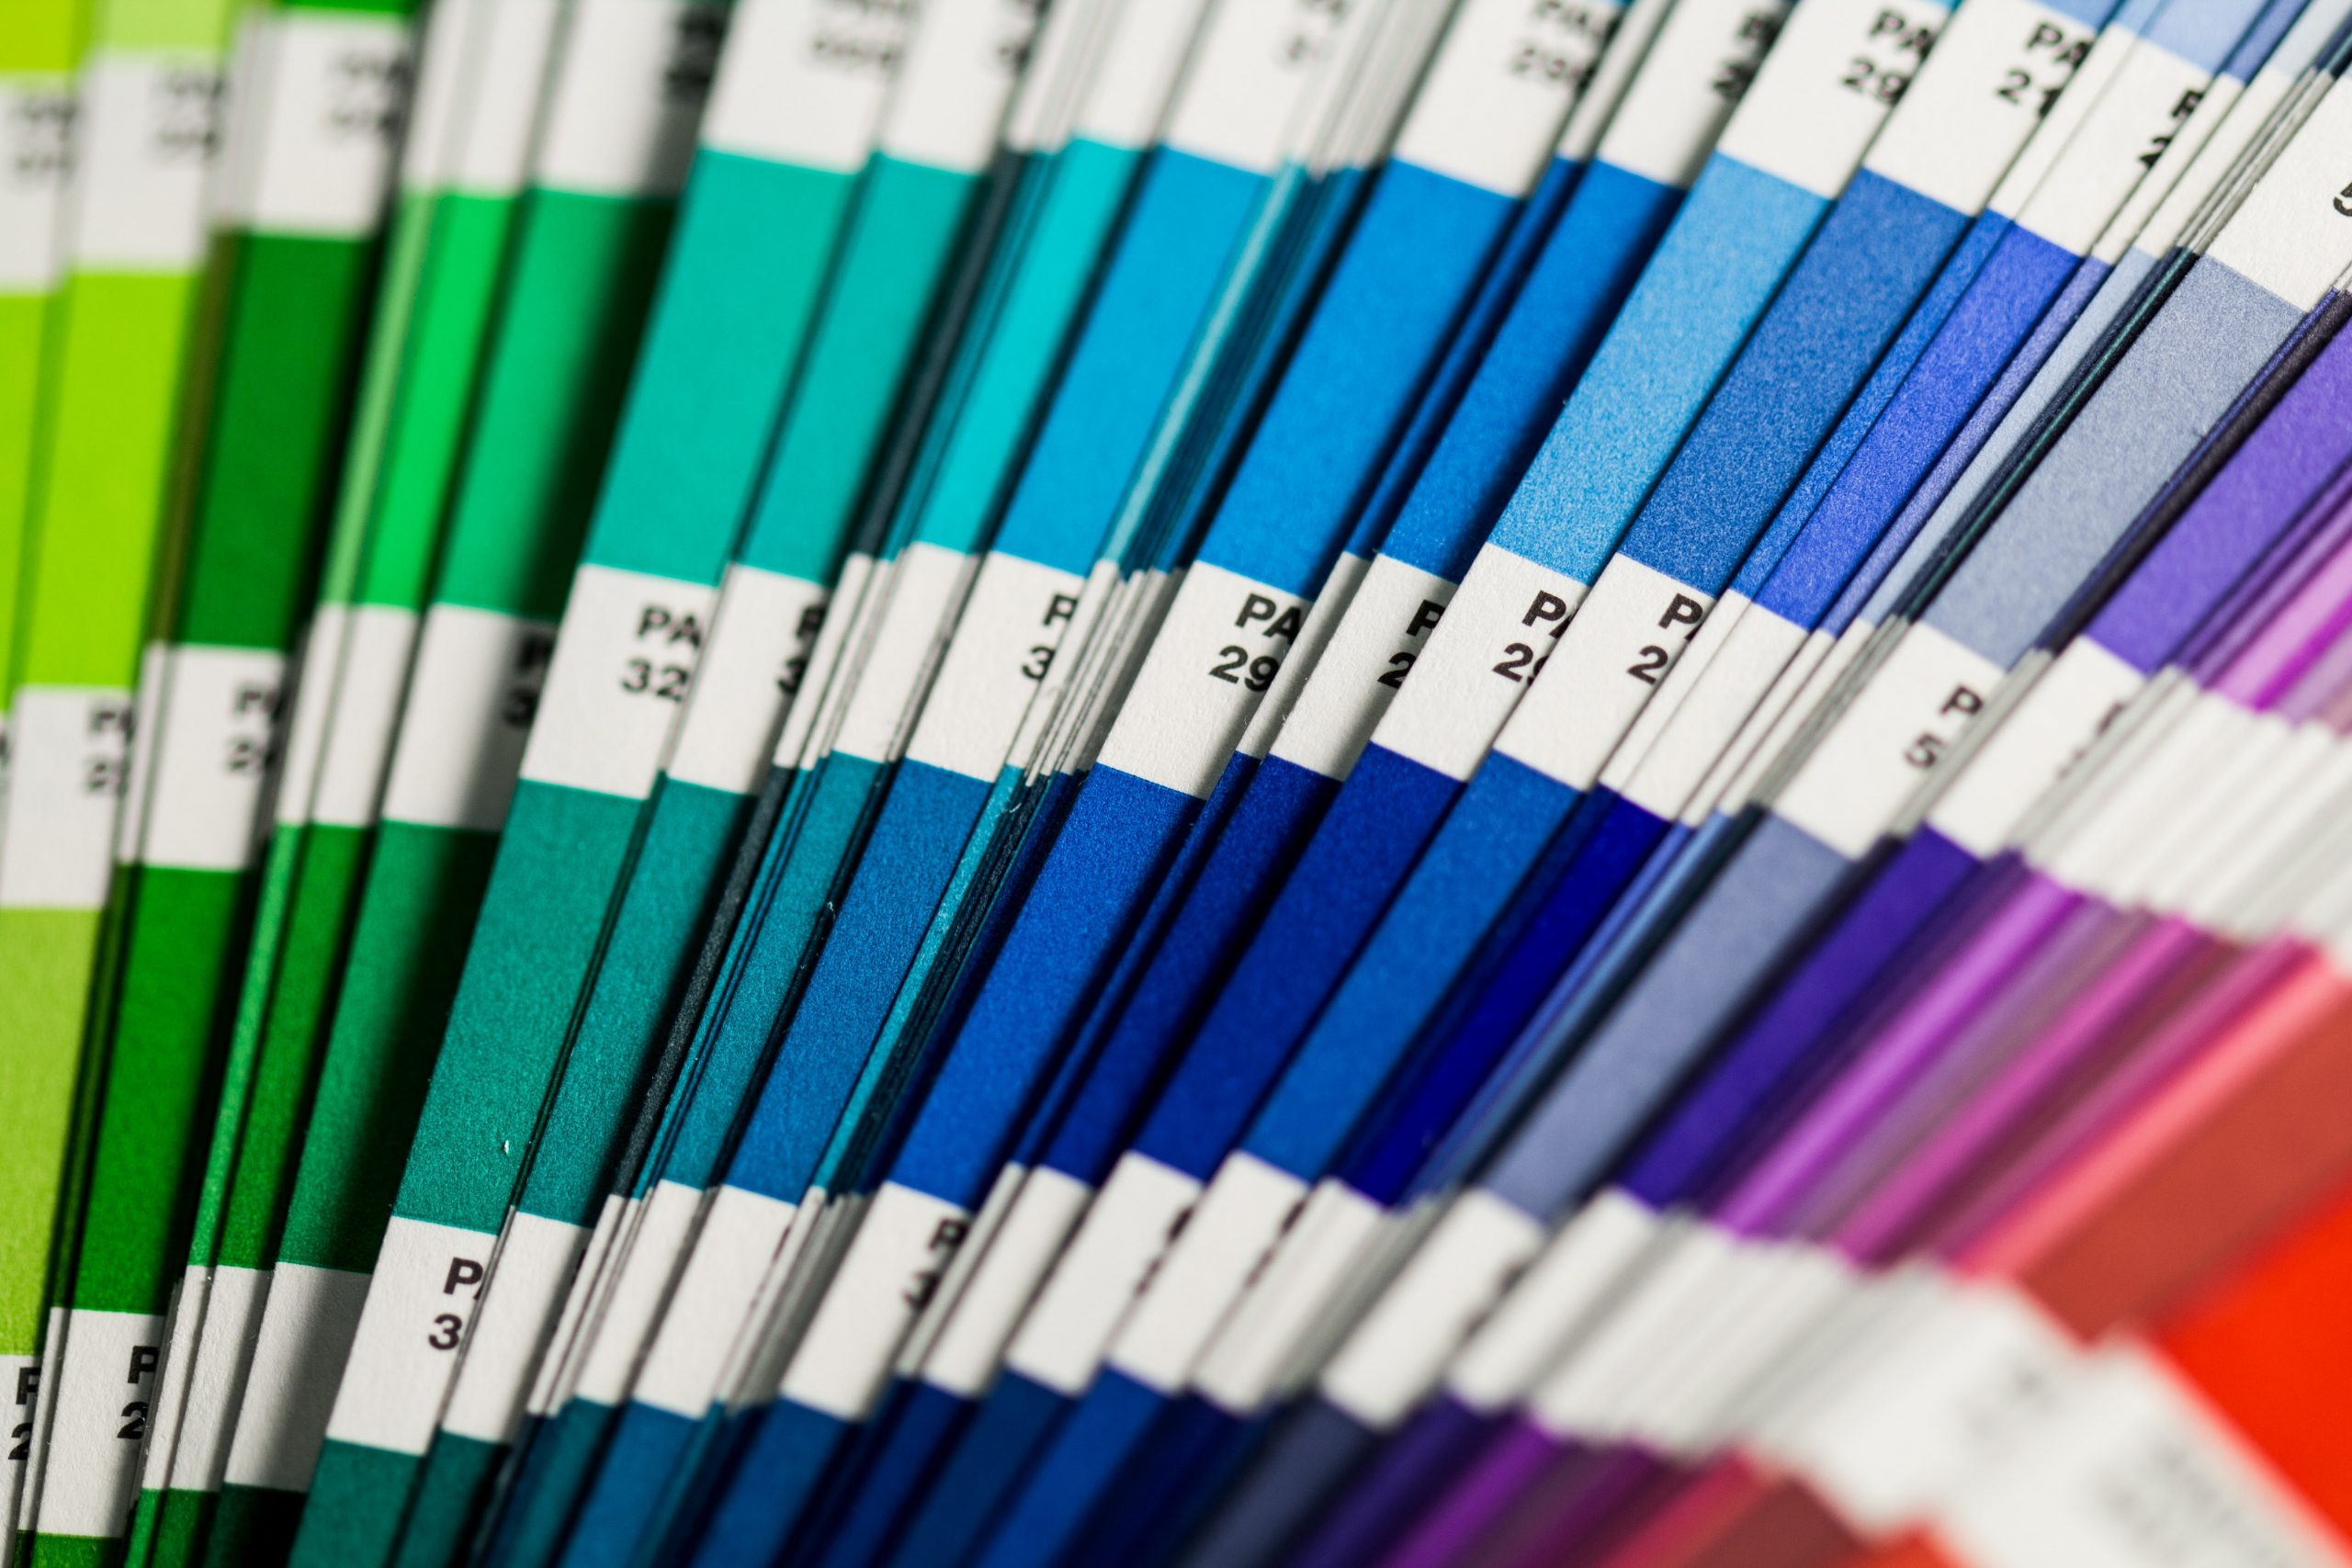 The Best Headlines, Colours, And Images To Use in Your Funnels